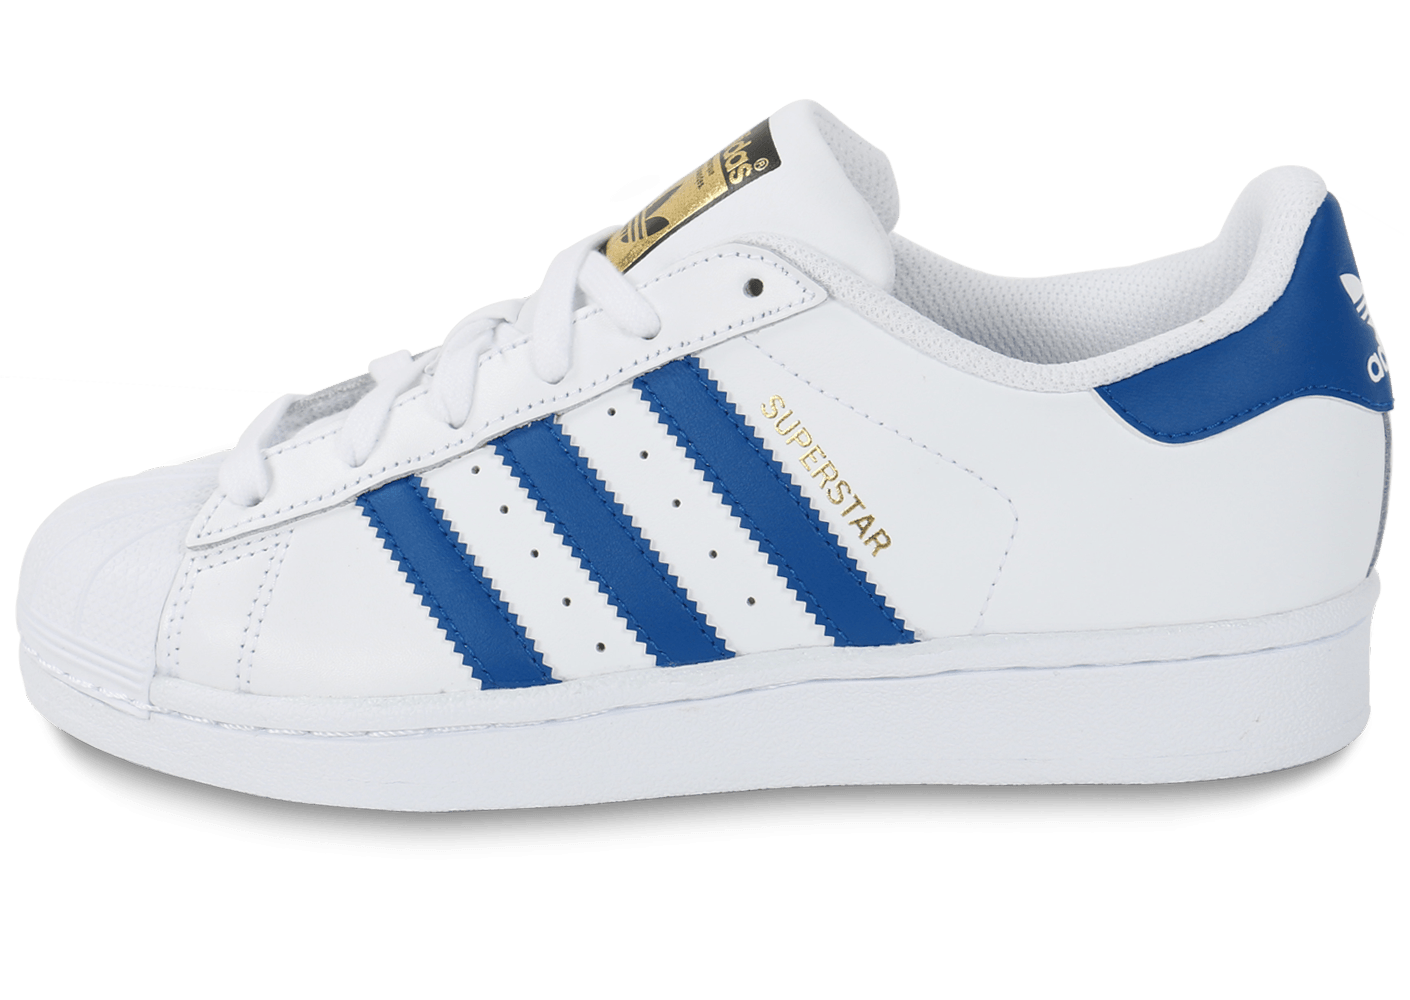 adidas Superstar Foundation Junior blanche et bleue - Chaussures adidas - Chausport